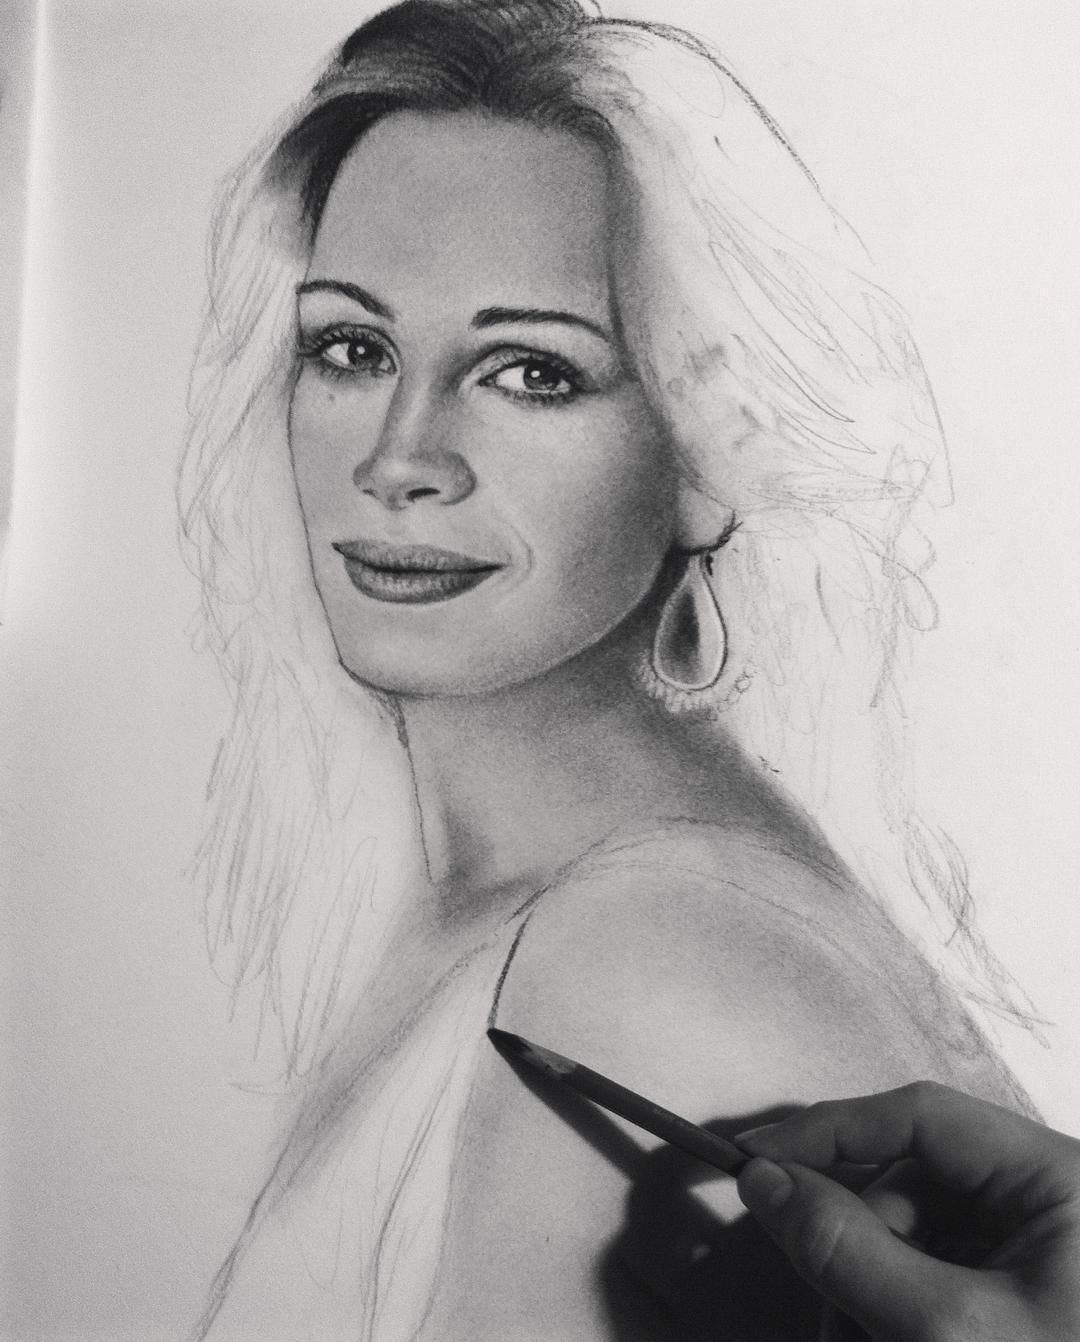 In progress ,charcoal on papers : #art #artwork #arte #artist #artistic #drawing #draw #portrait #picoftheday #picture #sketch #design #celebrity #juliaroberts #instagood #instagram #instaart #follow4follow #followme #followers #follow #pencil #charcoal #painting #film #hollywood #artistasalguero http://tipsrazzi.com/ipost/1518495717240124692/?code=BUSx887DLUU